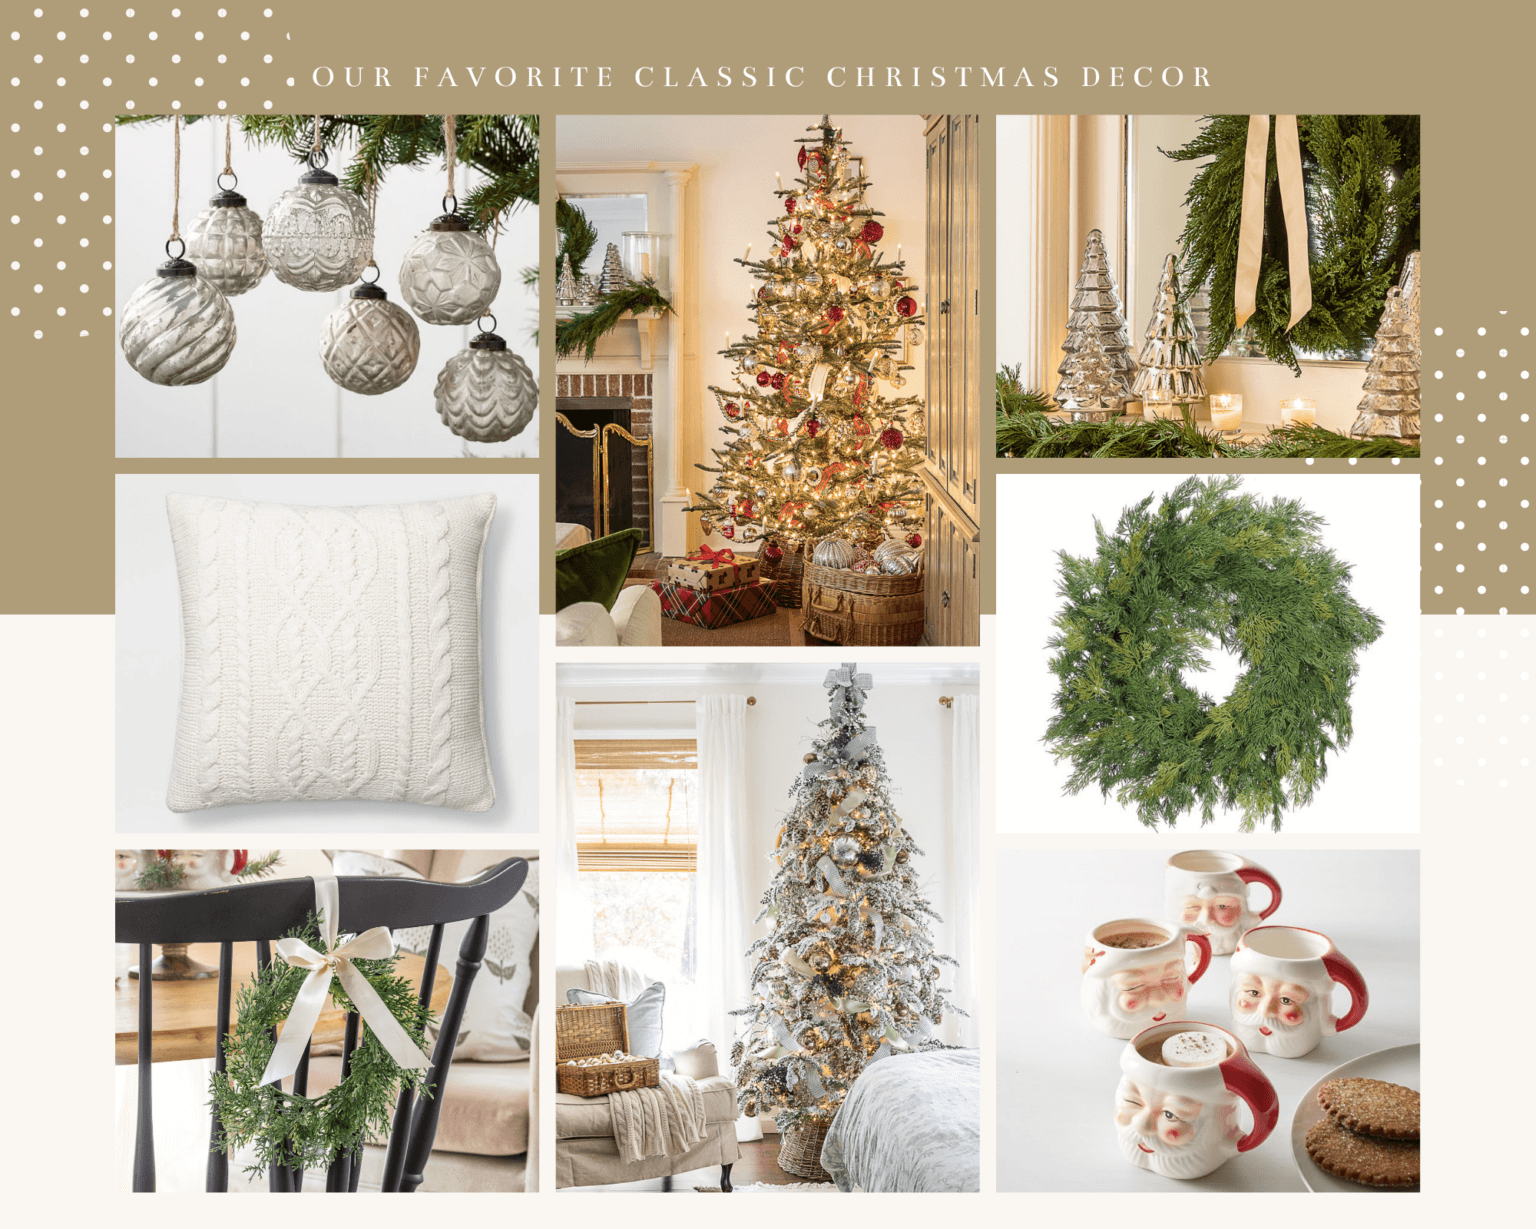 Welcome Home Sunday: My Favorite Classic Christmas Decor